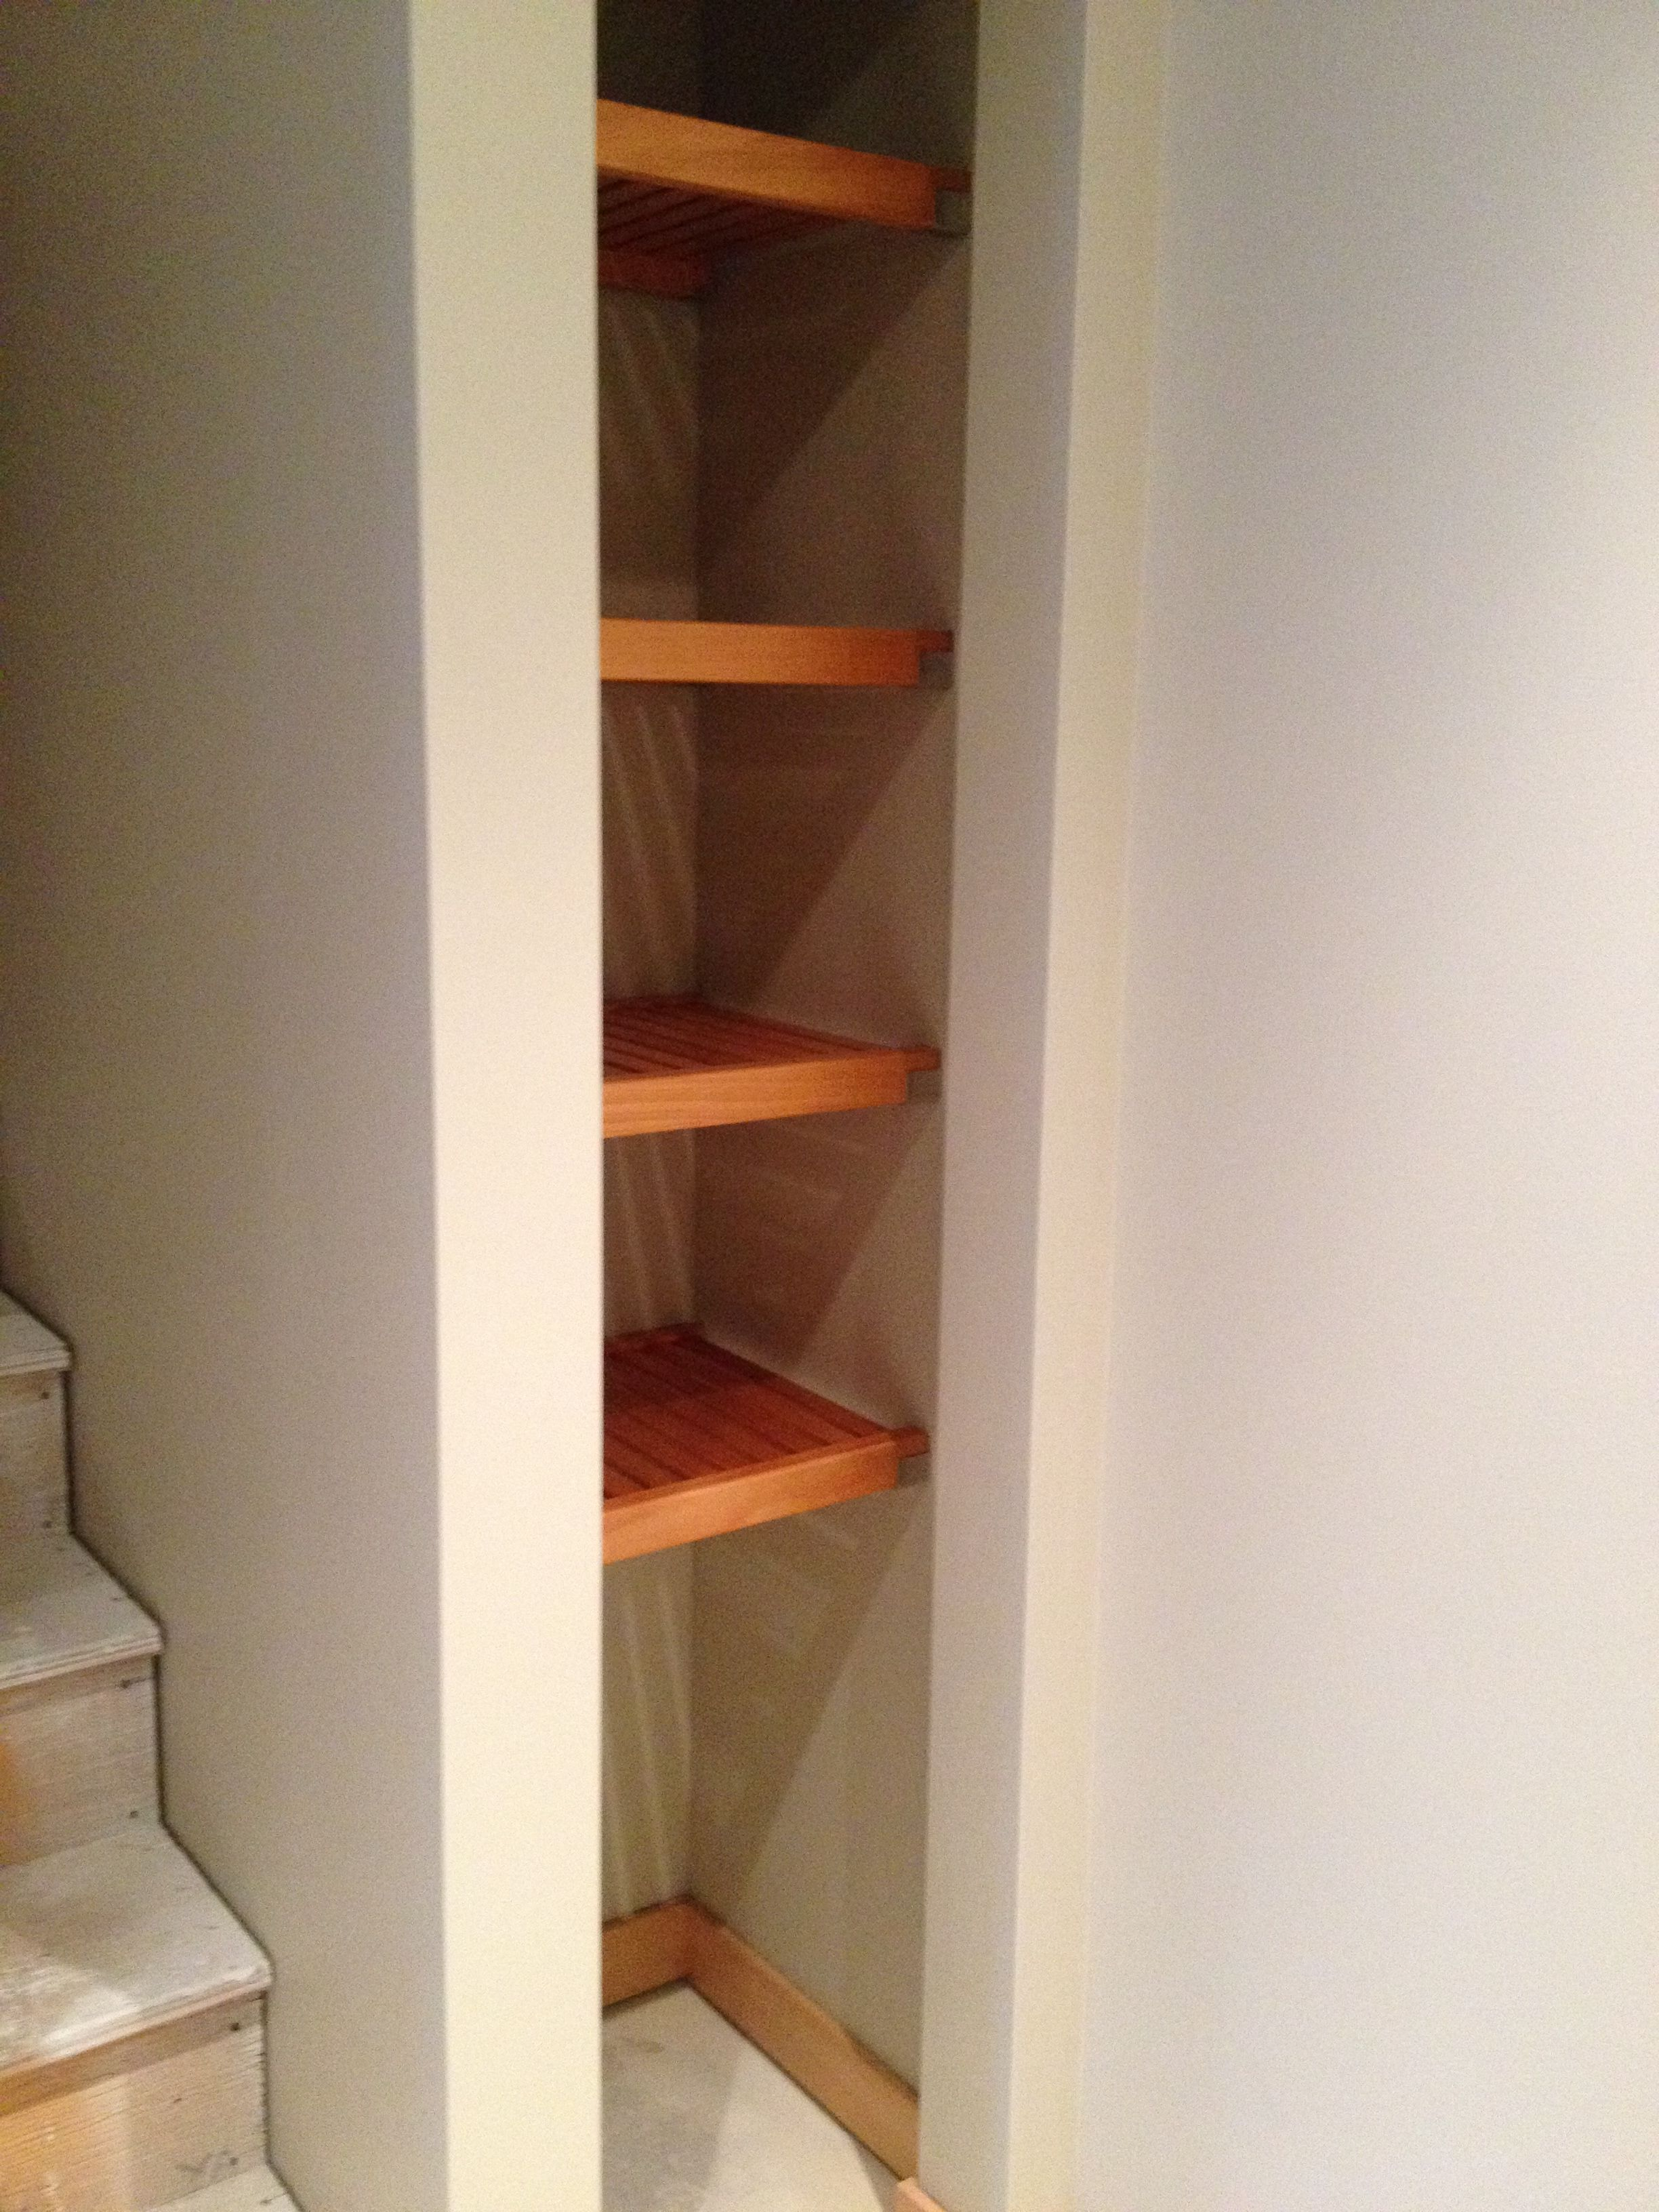 Make the most of your small spaces with some Honey Maple shelving, perfect for Linens and Pantries